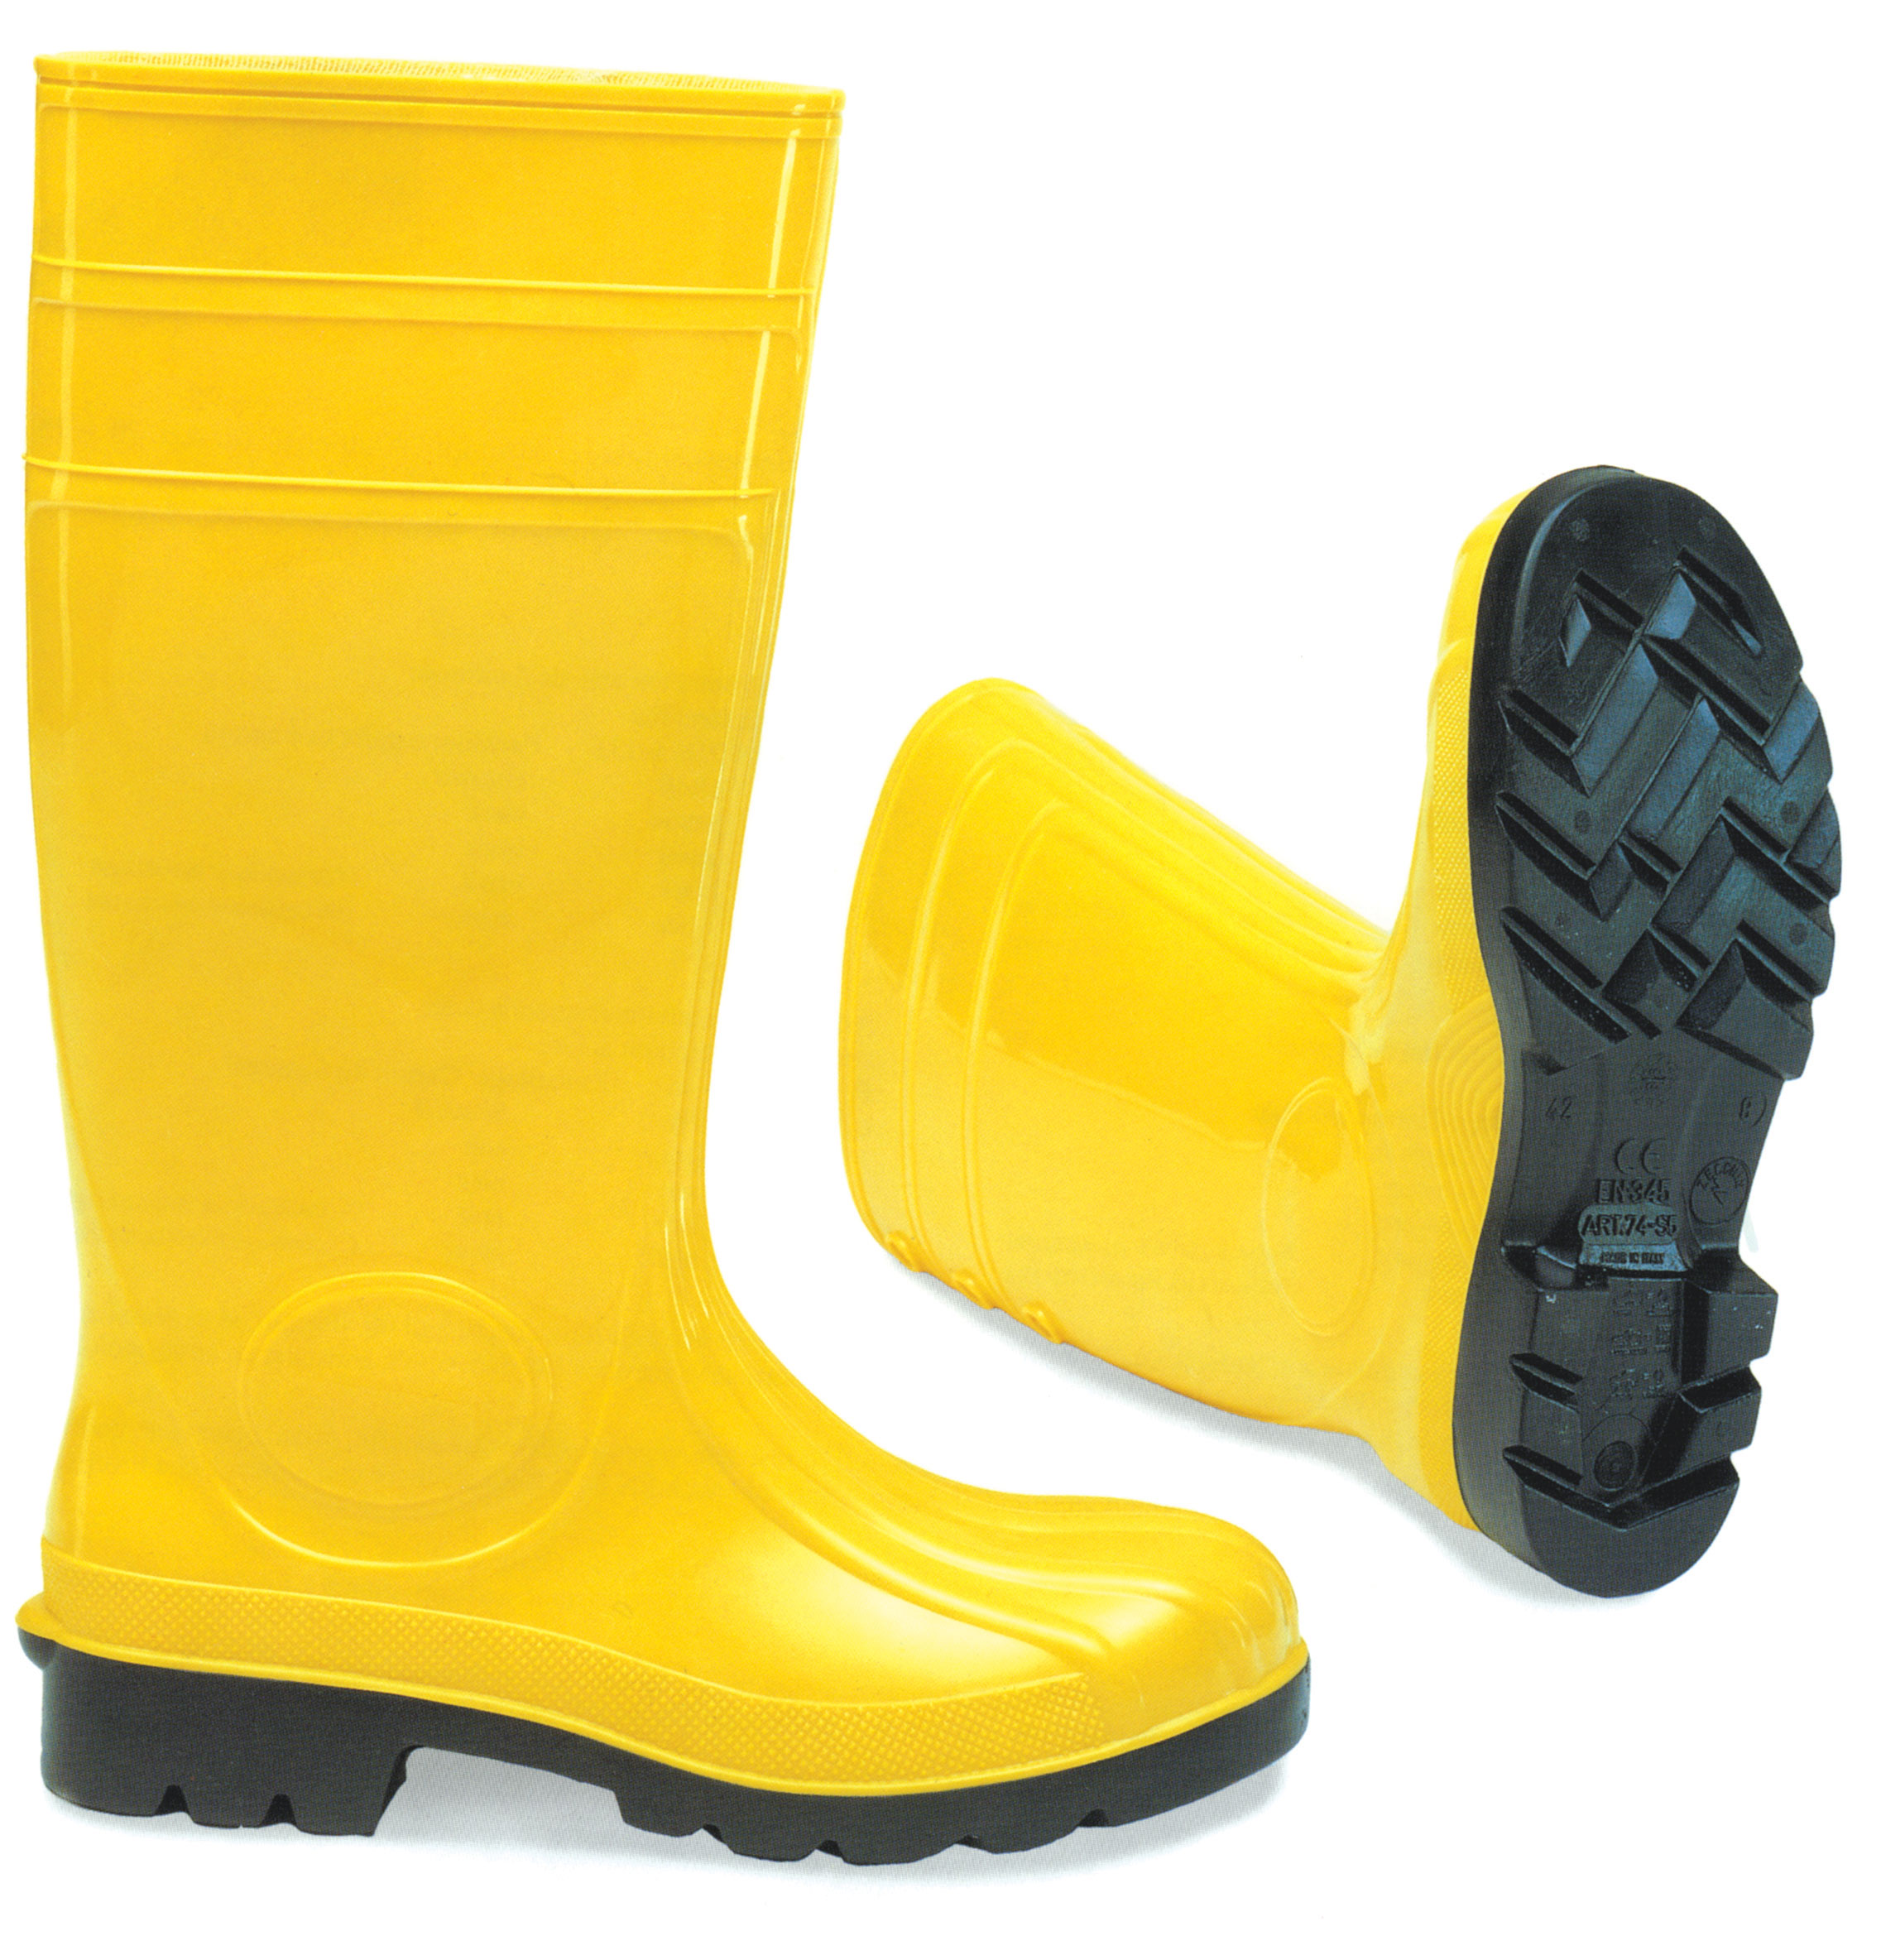 Product 2.0011yellow-s5-boots c6e11aeeab8